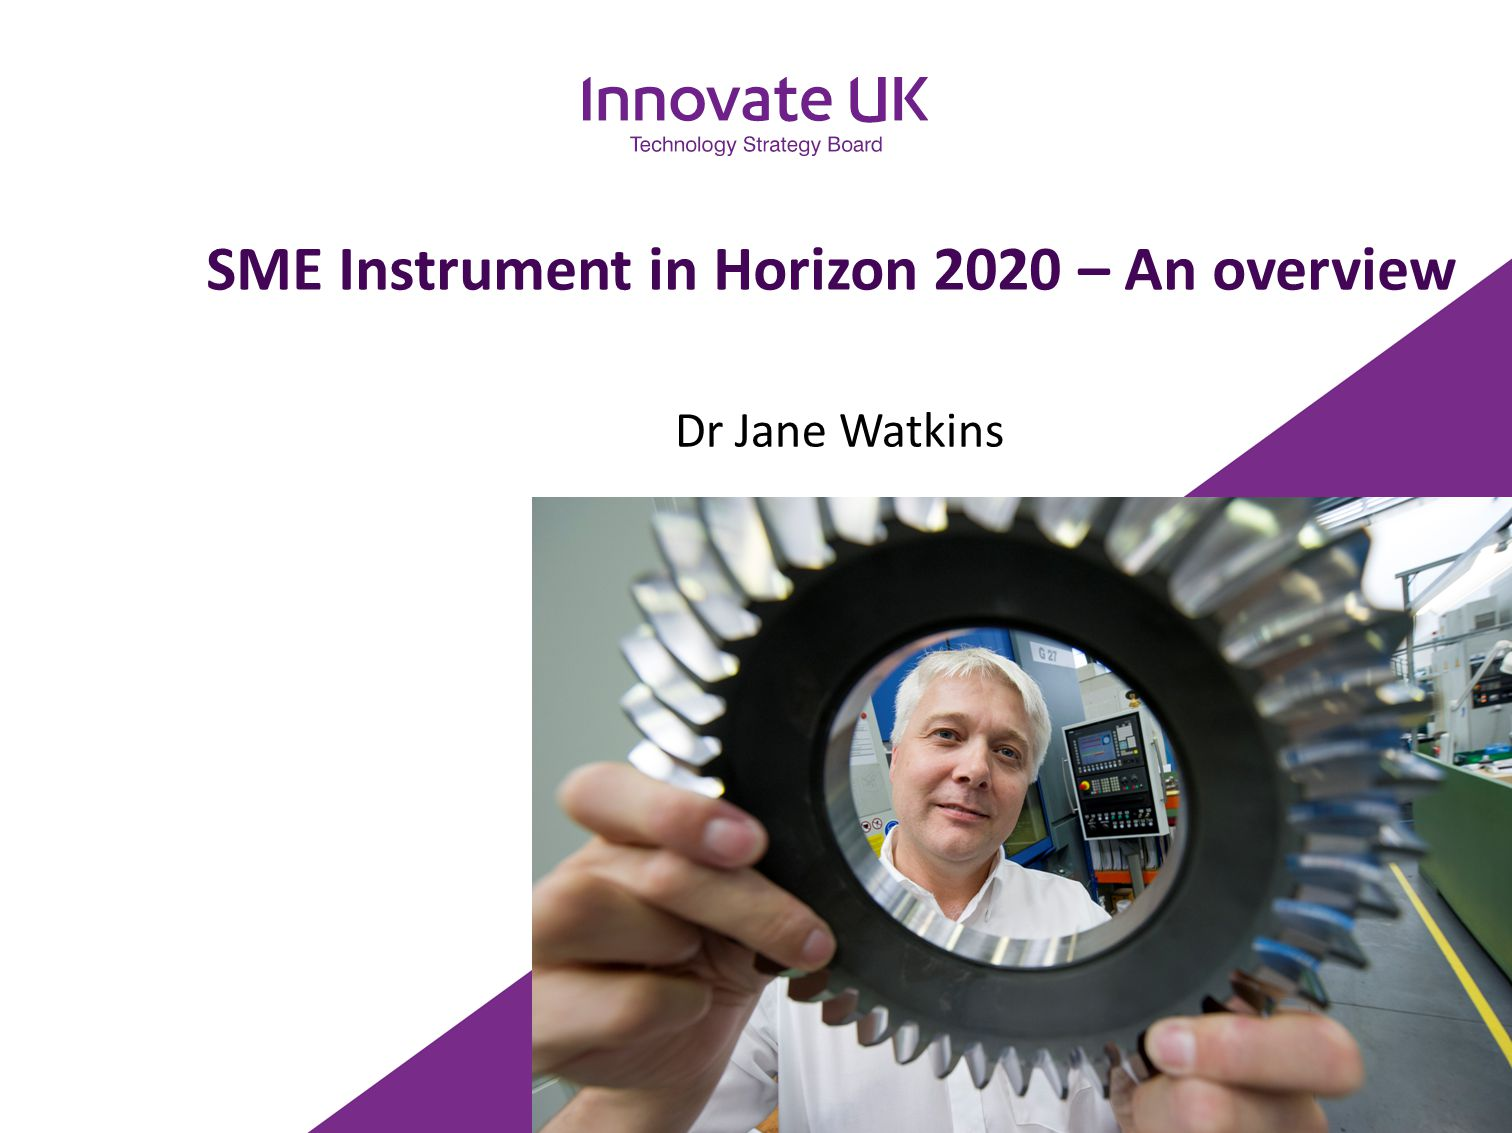 SME Instrument in Horizon 2020 – An overview Dr Jane Watkins